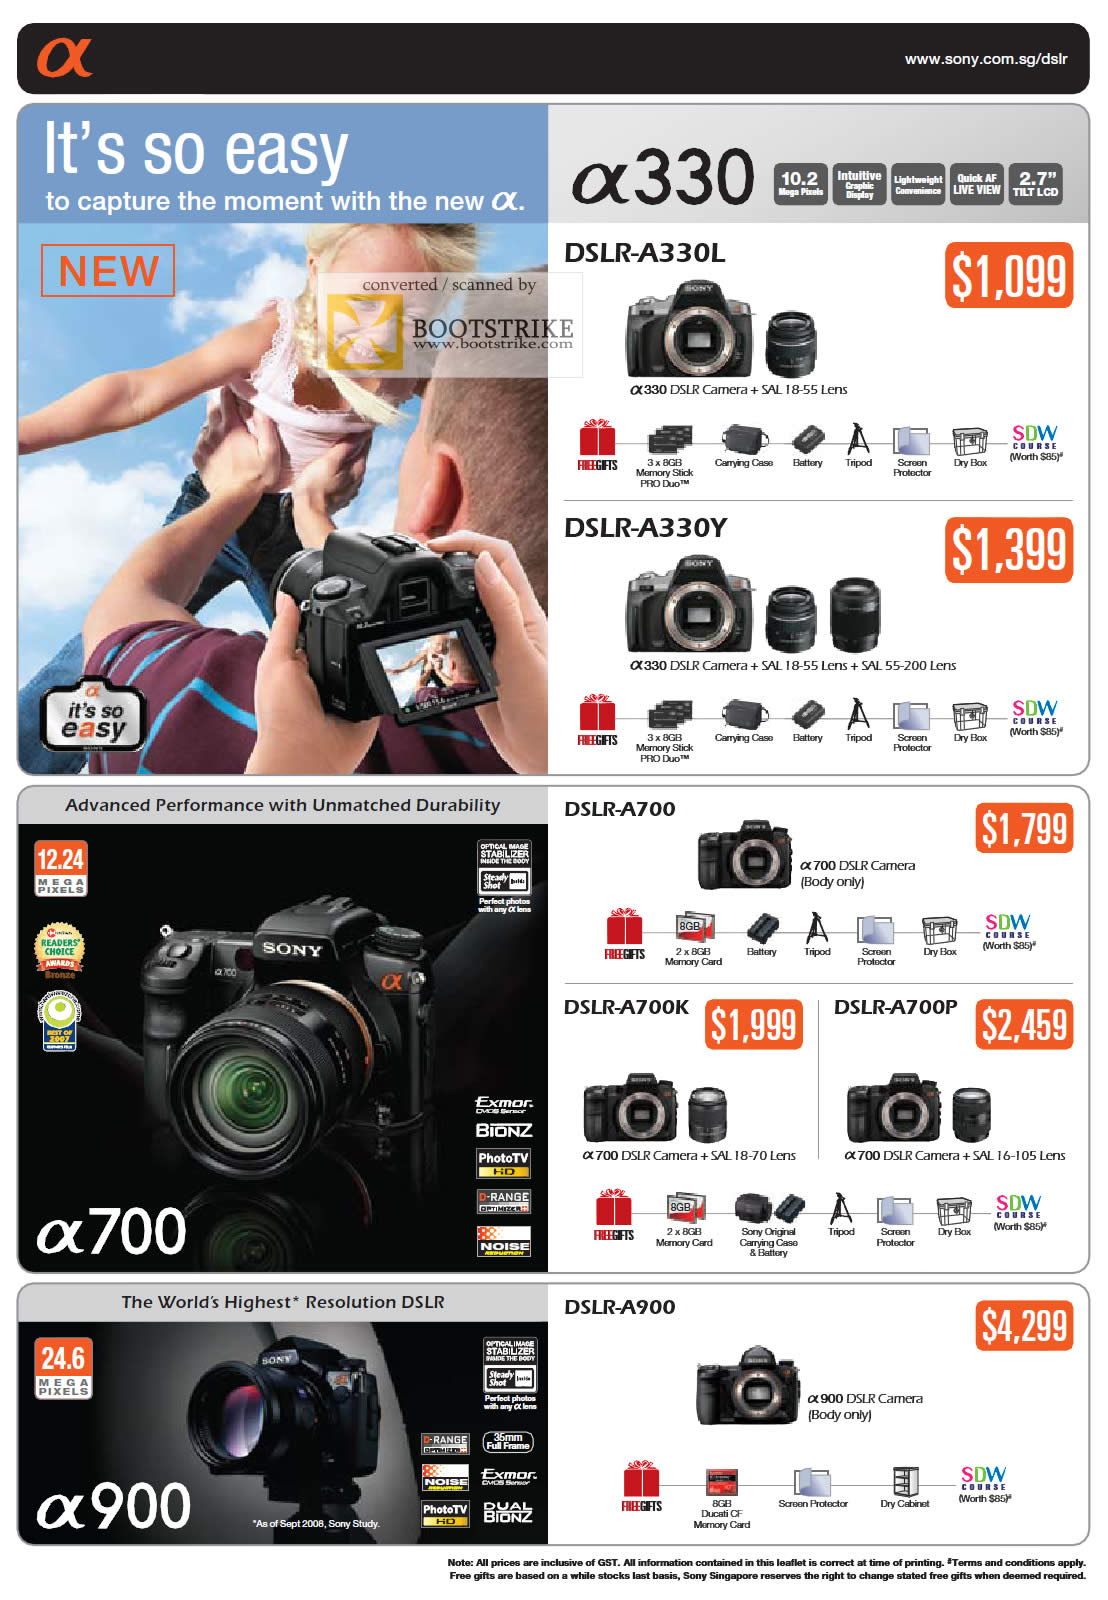 Camera Sony Dslr Camera Price List sony alpha dslr a330 a700 a900 digital camera pc show 2009 price list image brochure of camera